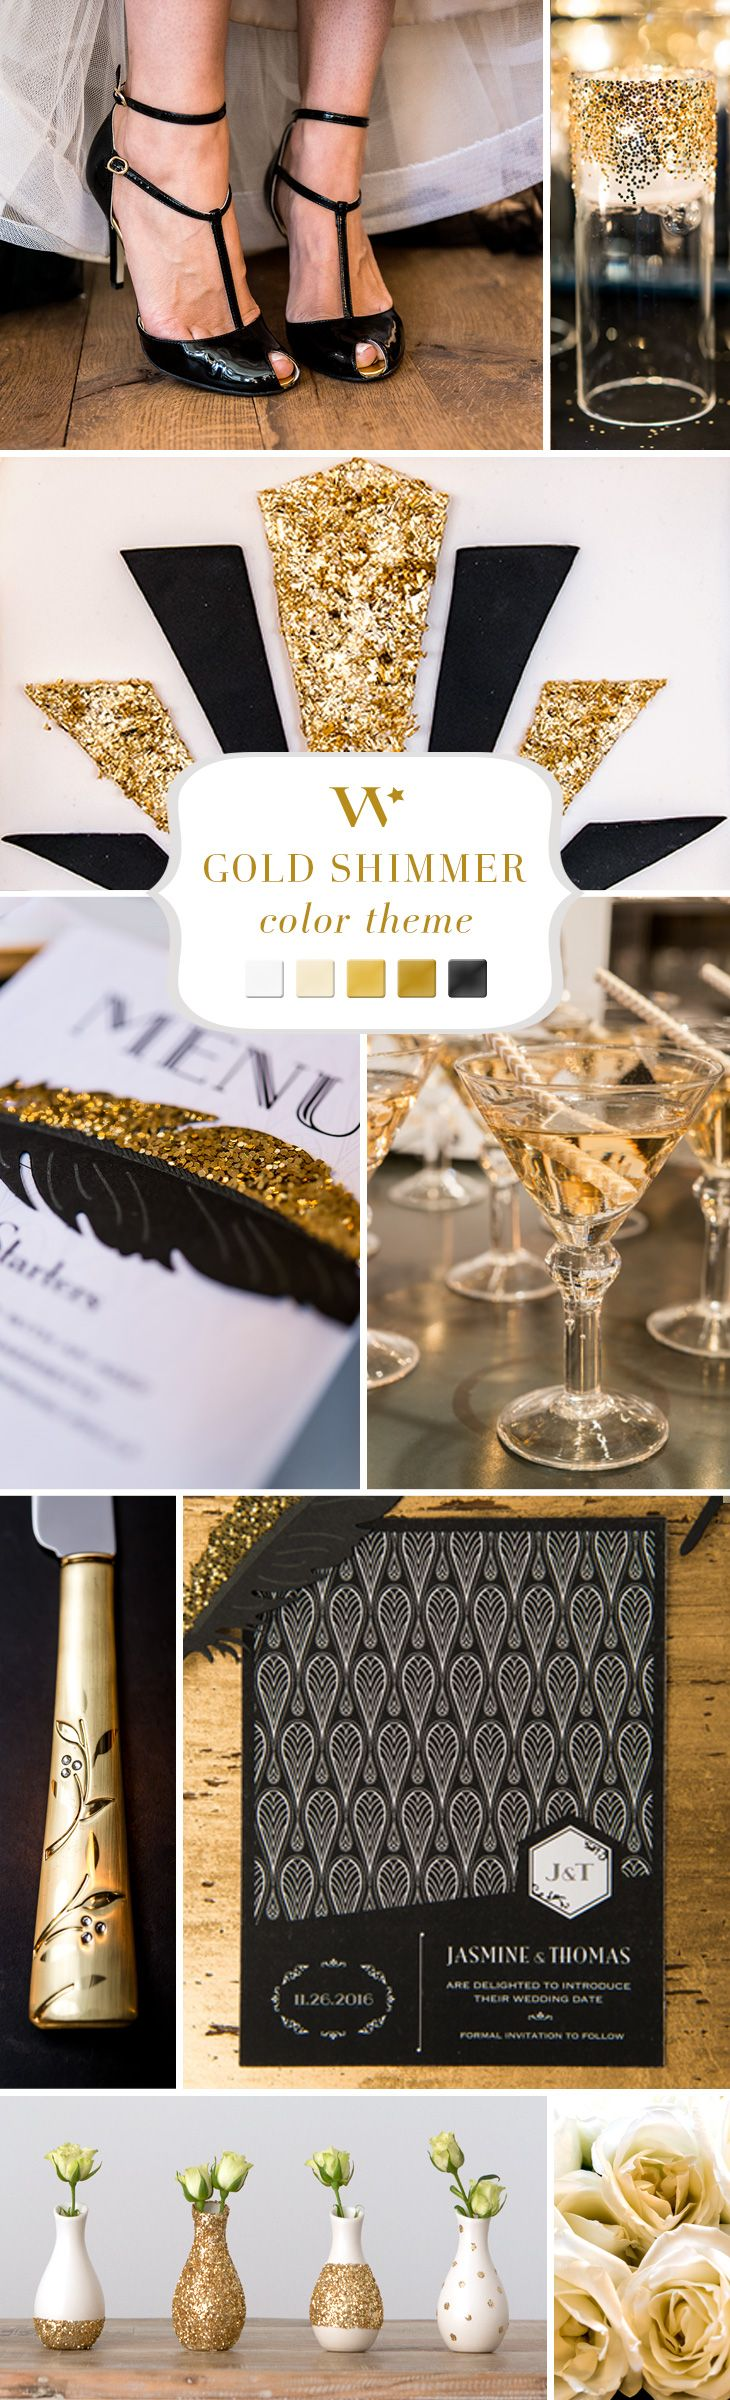 Whether glamorous and opulent or muted and antique, gold is the perfect accent for almost any wedding theme. Infuse it in subtle ways for little pops of sparkle or go bold throughout your décor. No matter how you use it, gold is one color that will definitely impress.